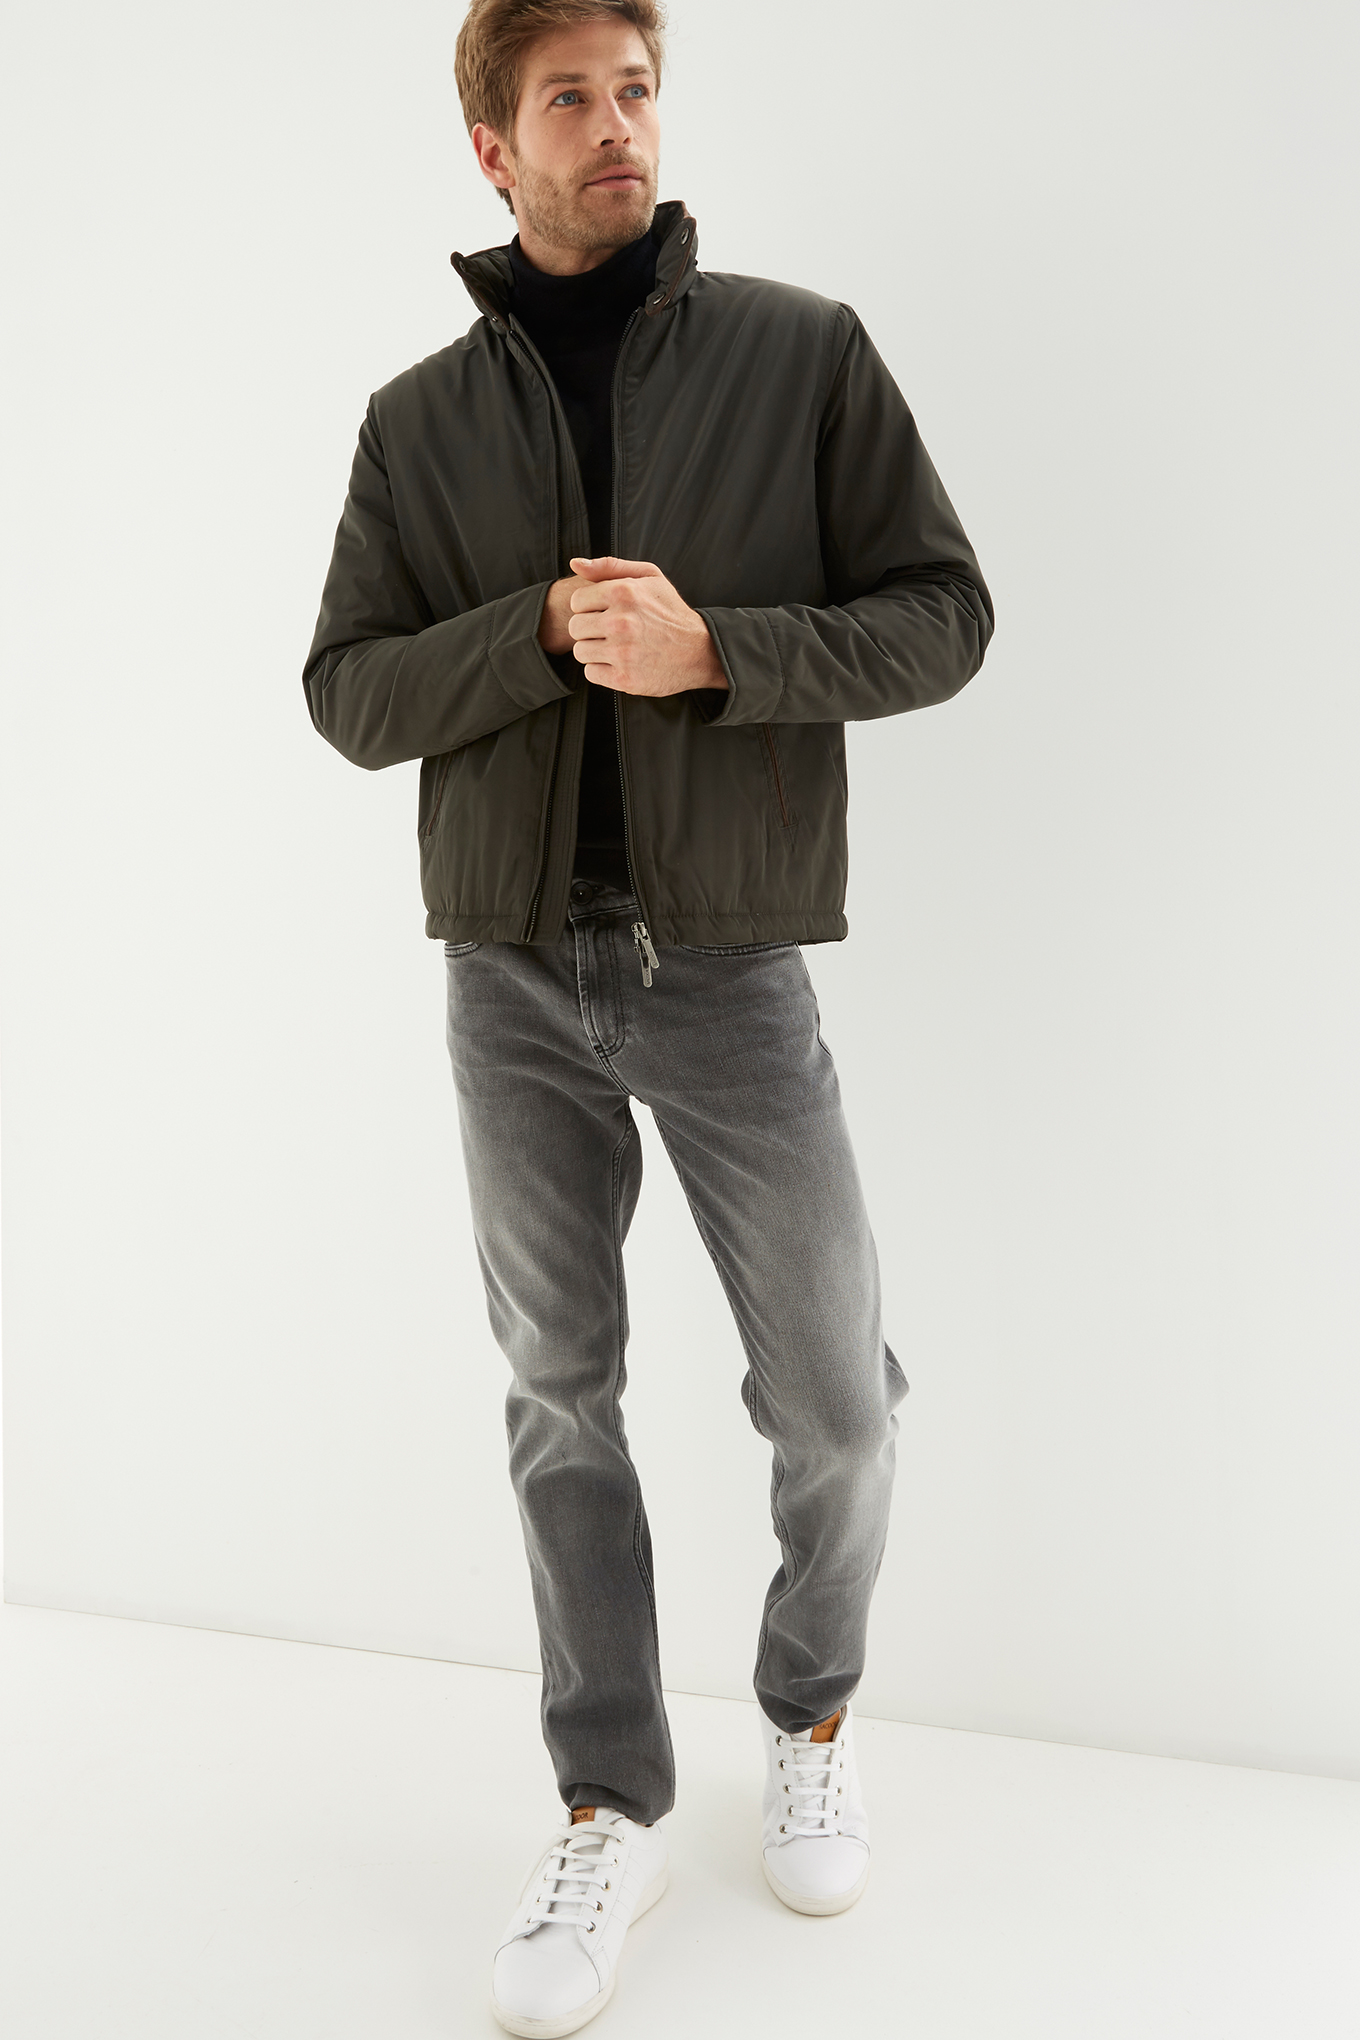 Jacket Khaki Casual Man